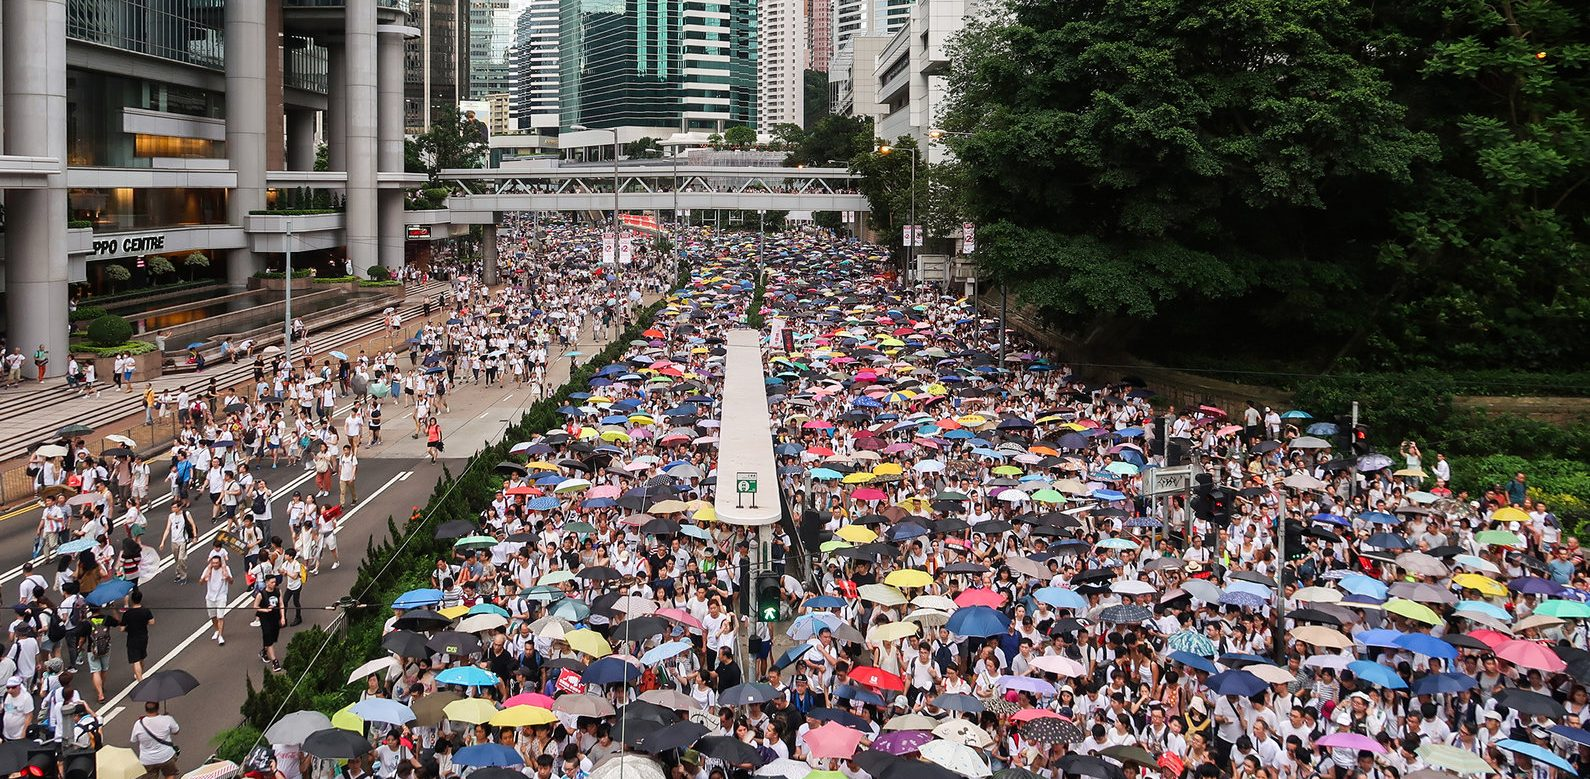 Manifestation contre la loi sur l'extradition à Hong Kong le 9 juin 2019. (Source : Wikimedia Commons)